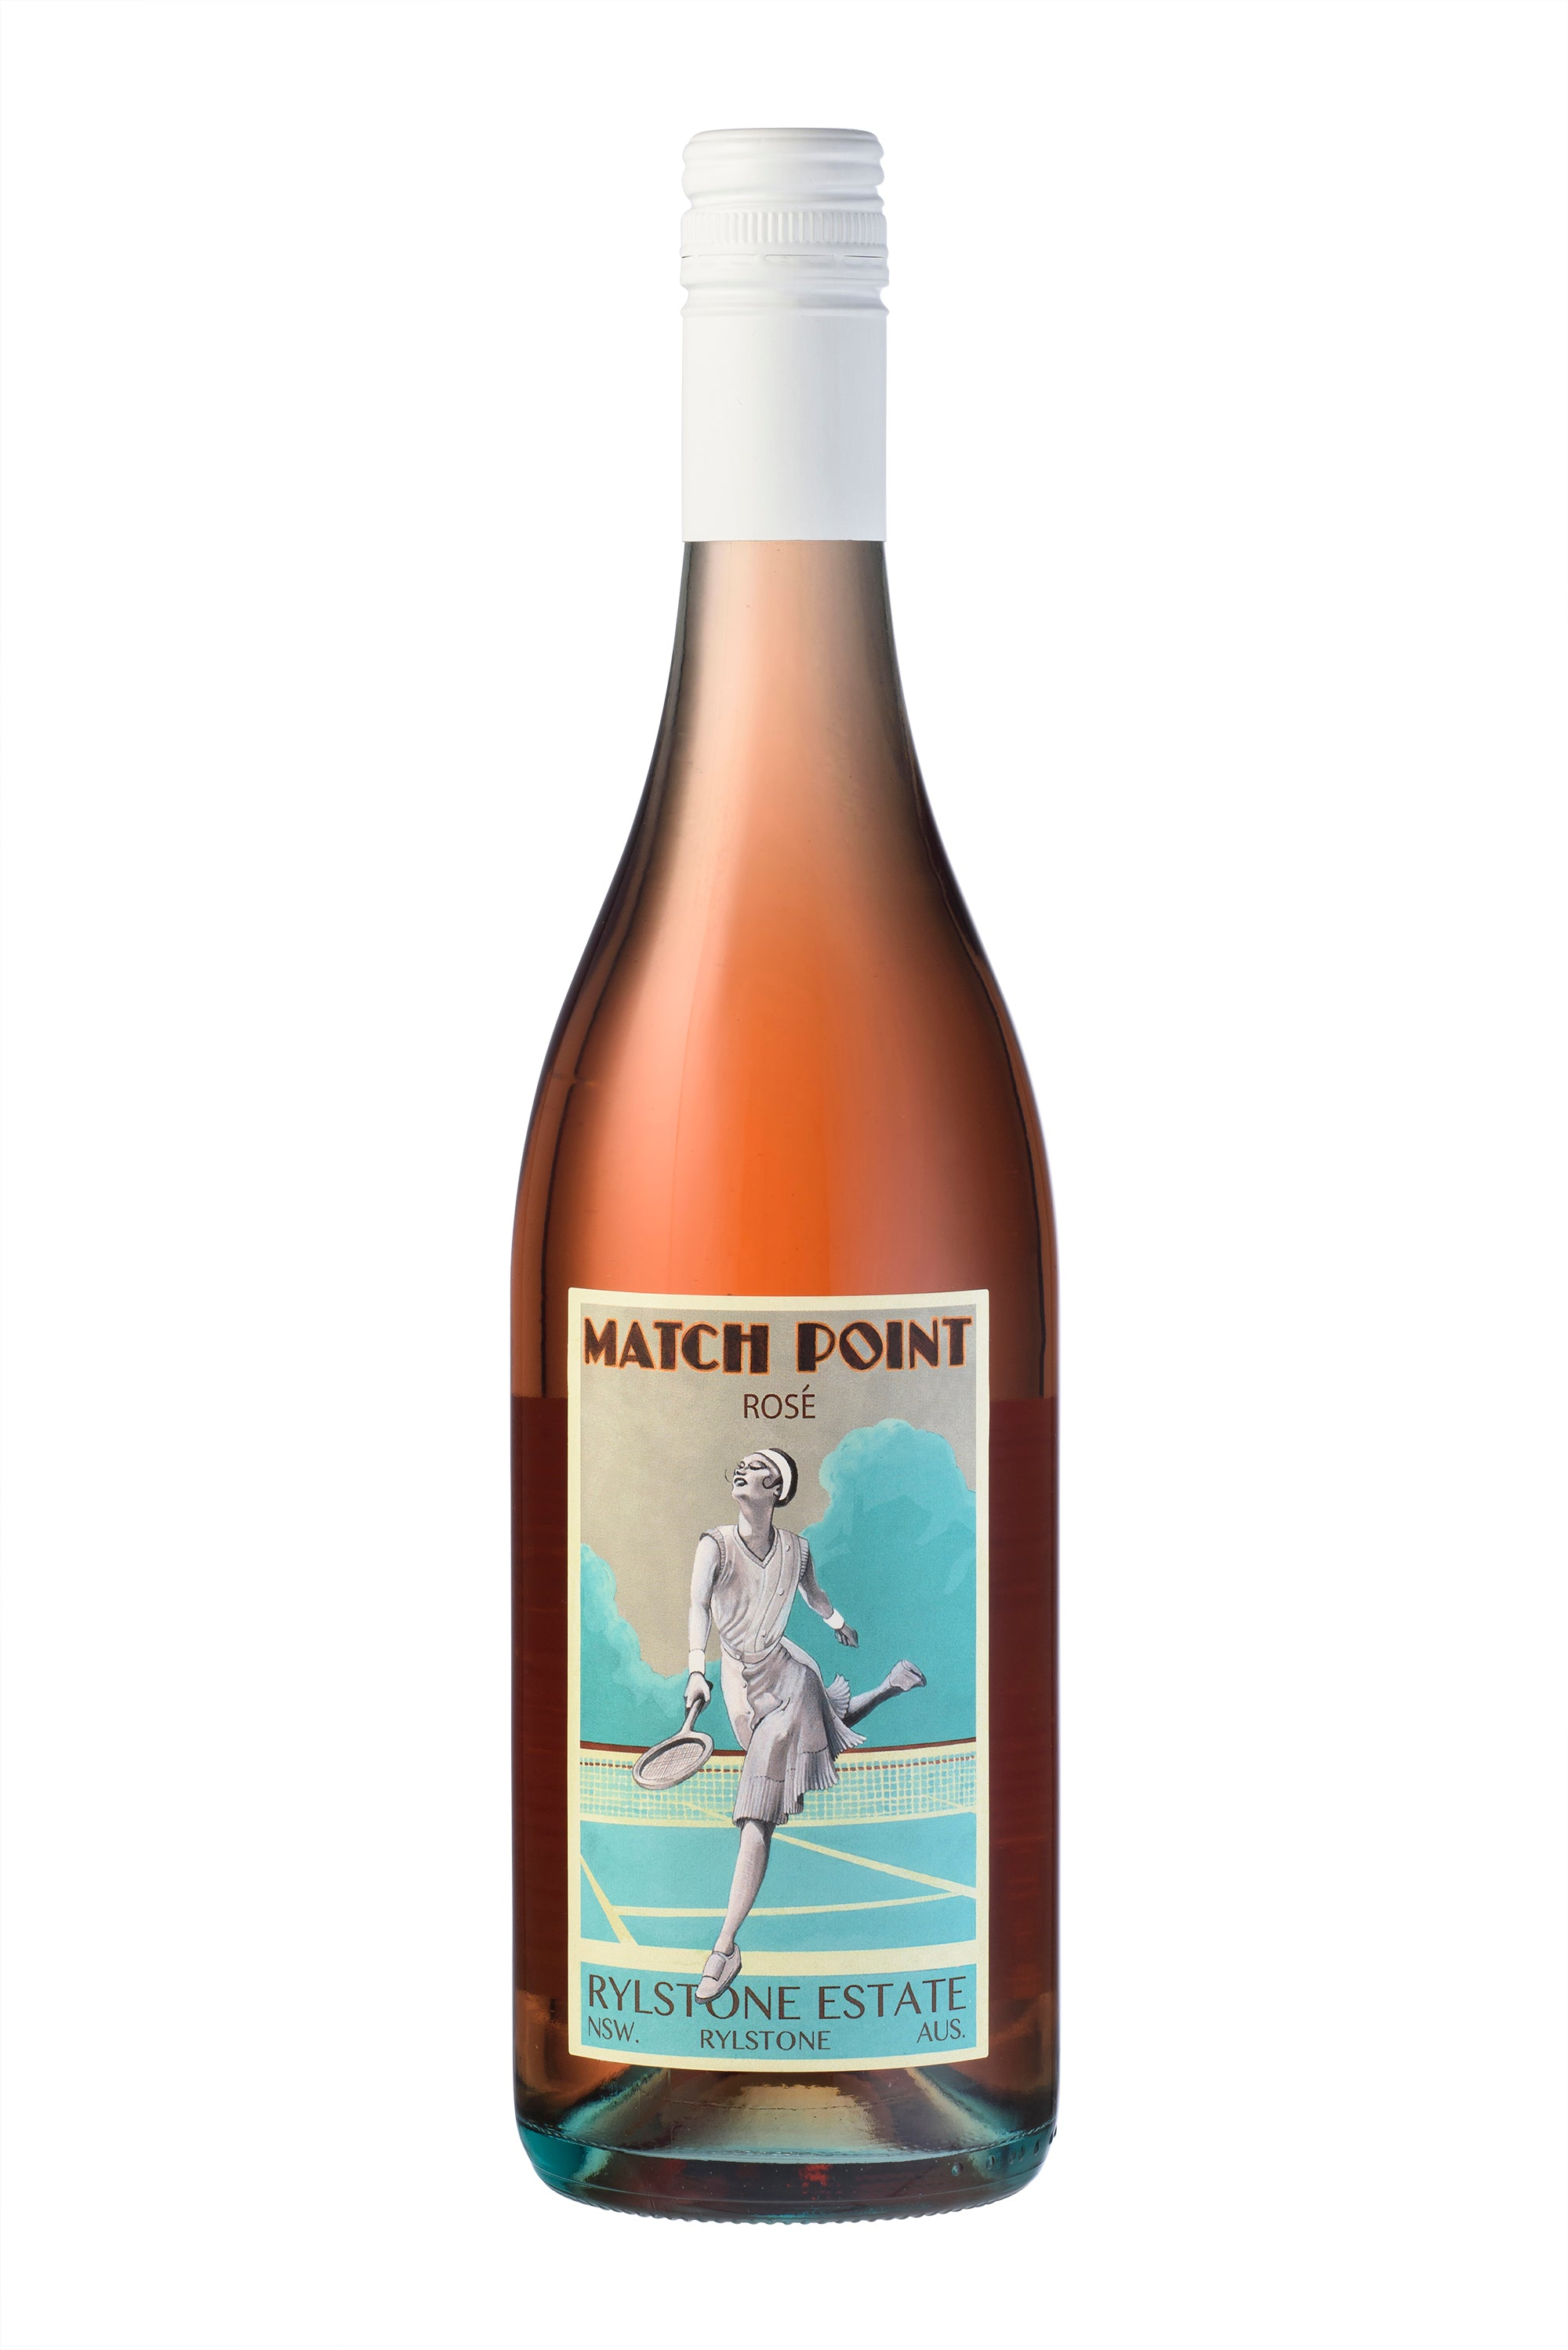 2016 'Rylstone Estate Match Point Rosé'